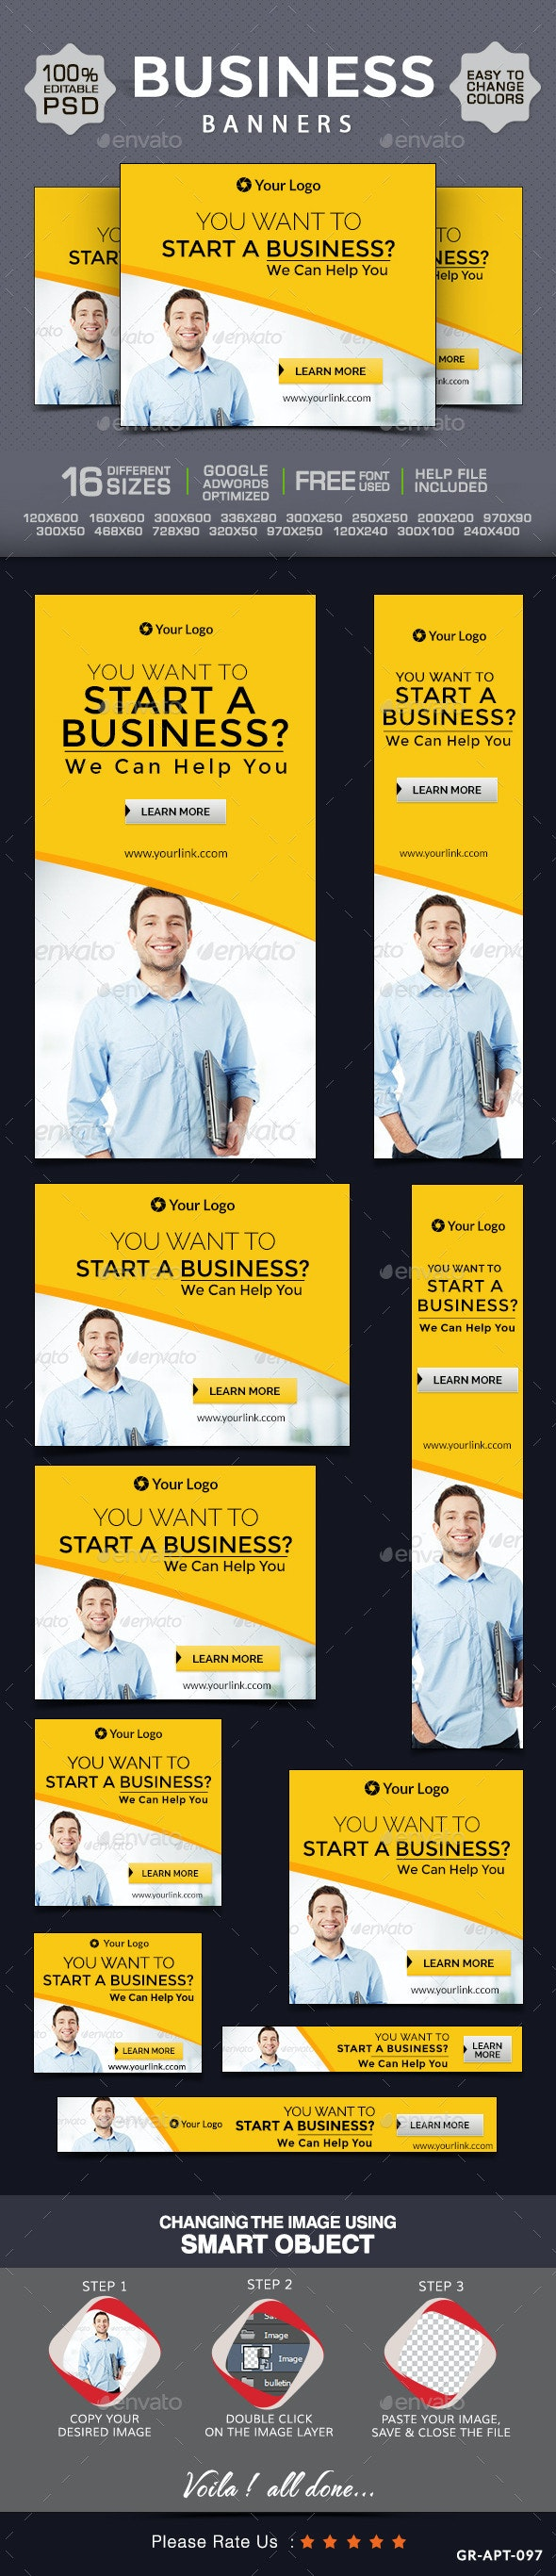 Business Web Banner Design Set - Banners & Ads Web Elements